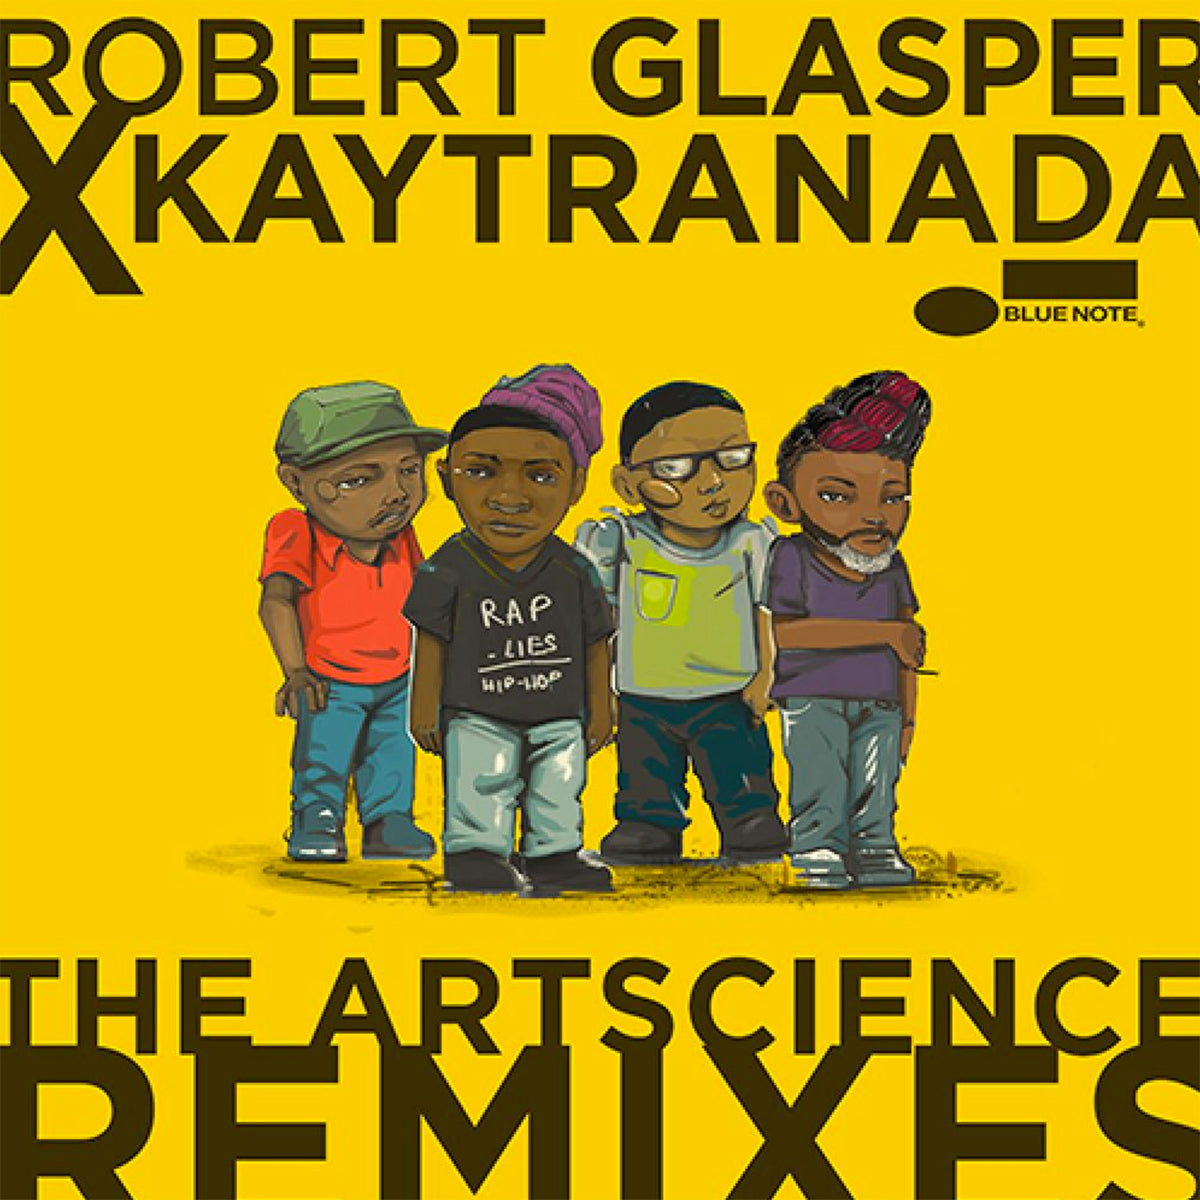 "Robert Glasper Experiment: Robert Glasper x KAYTRANADA: The ArtScience Remixes Vinyl 12"" (Record Store Day)"